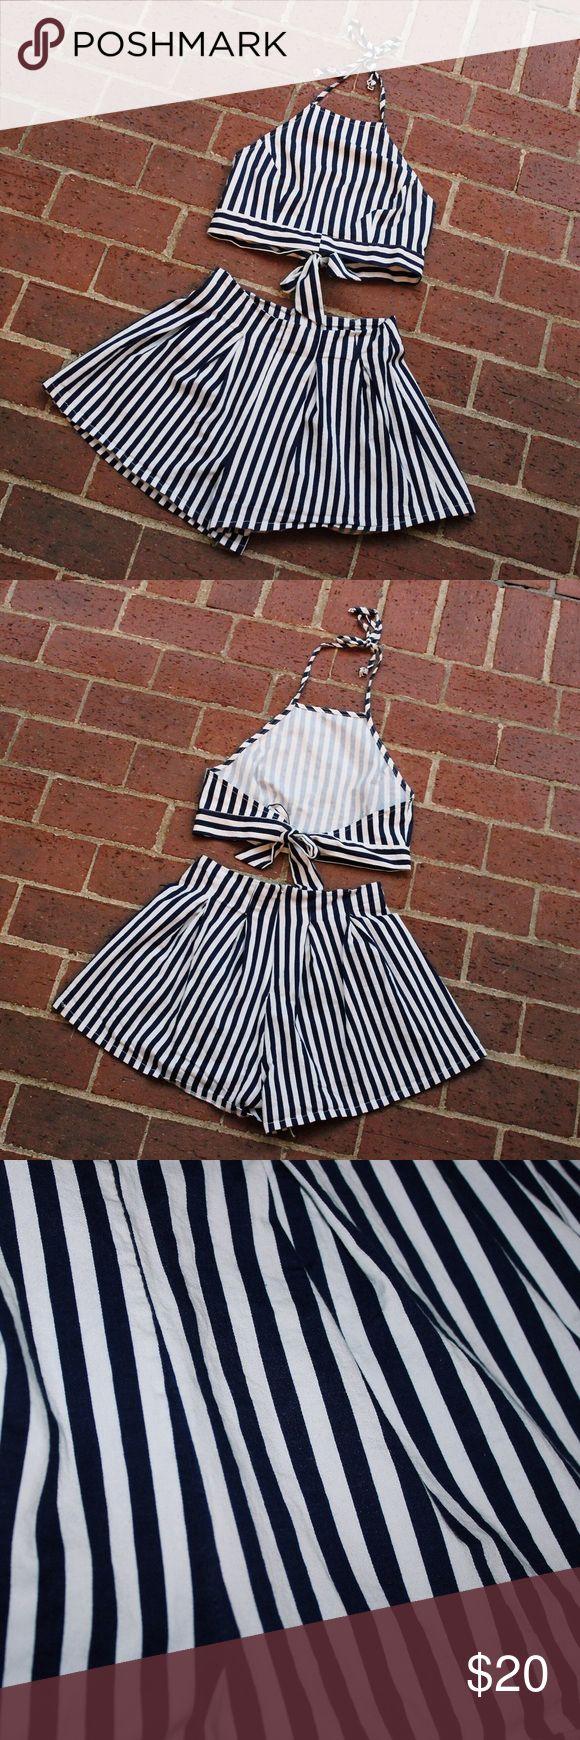 Navy Blue and White Stripped Two Piece Set This two piece set (shorts and top) is great for a casual outfit or add heels to go out on the town! This playsuit has navy blue and white stripes. The top is very adjustable with ties. Only worn once! Other